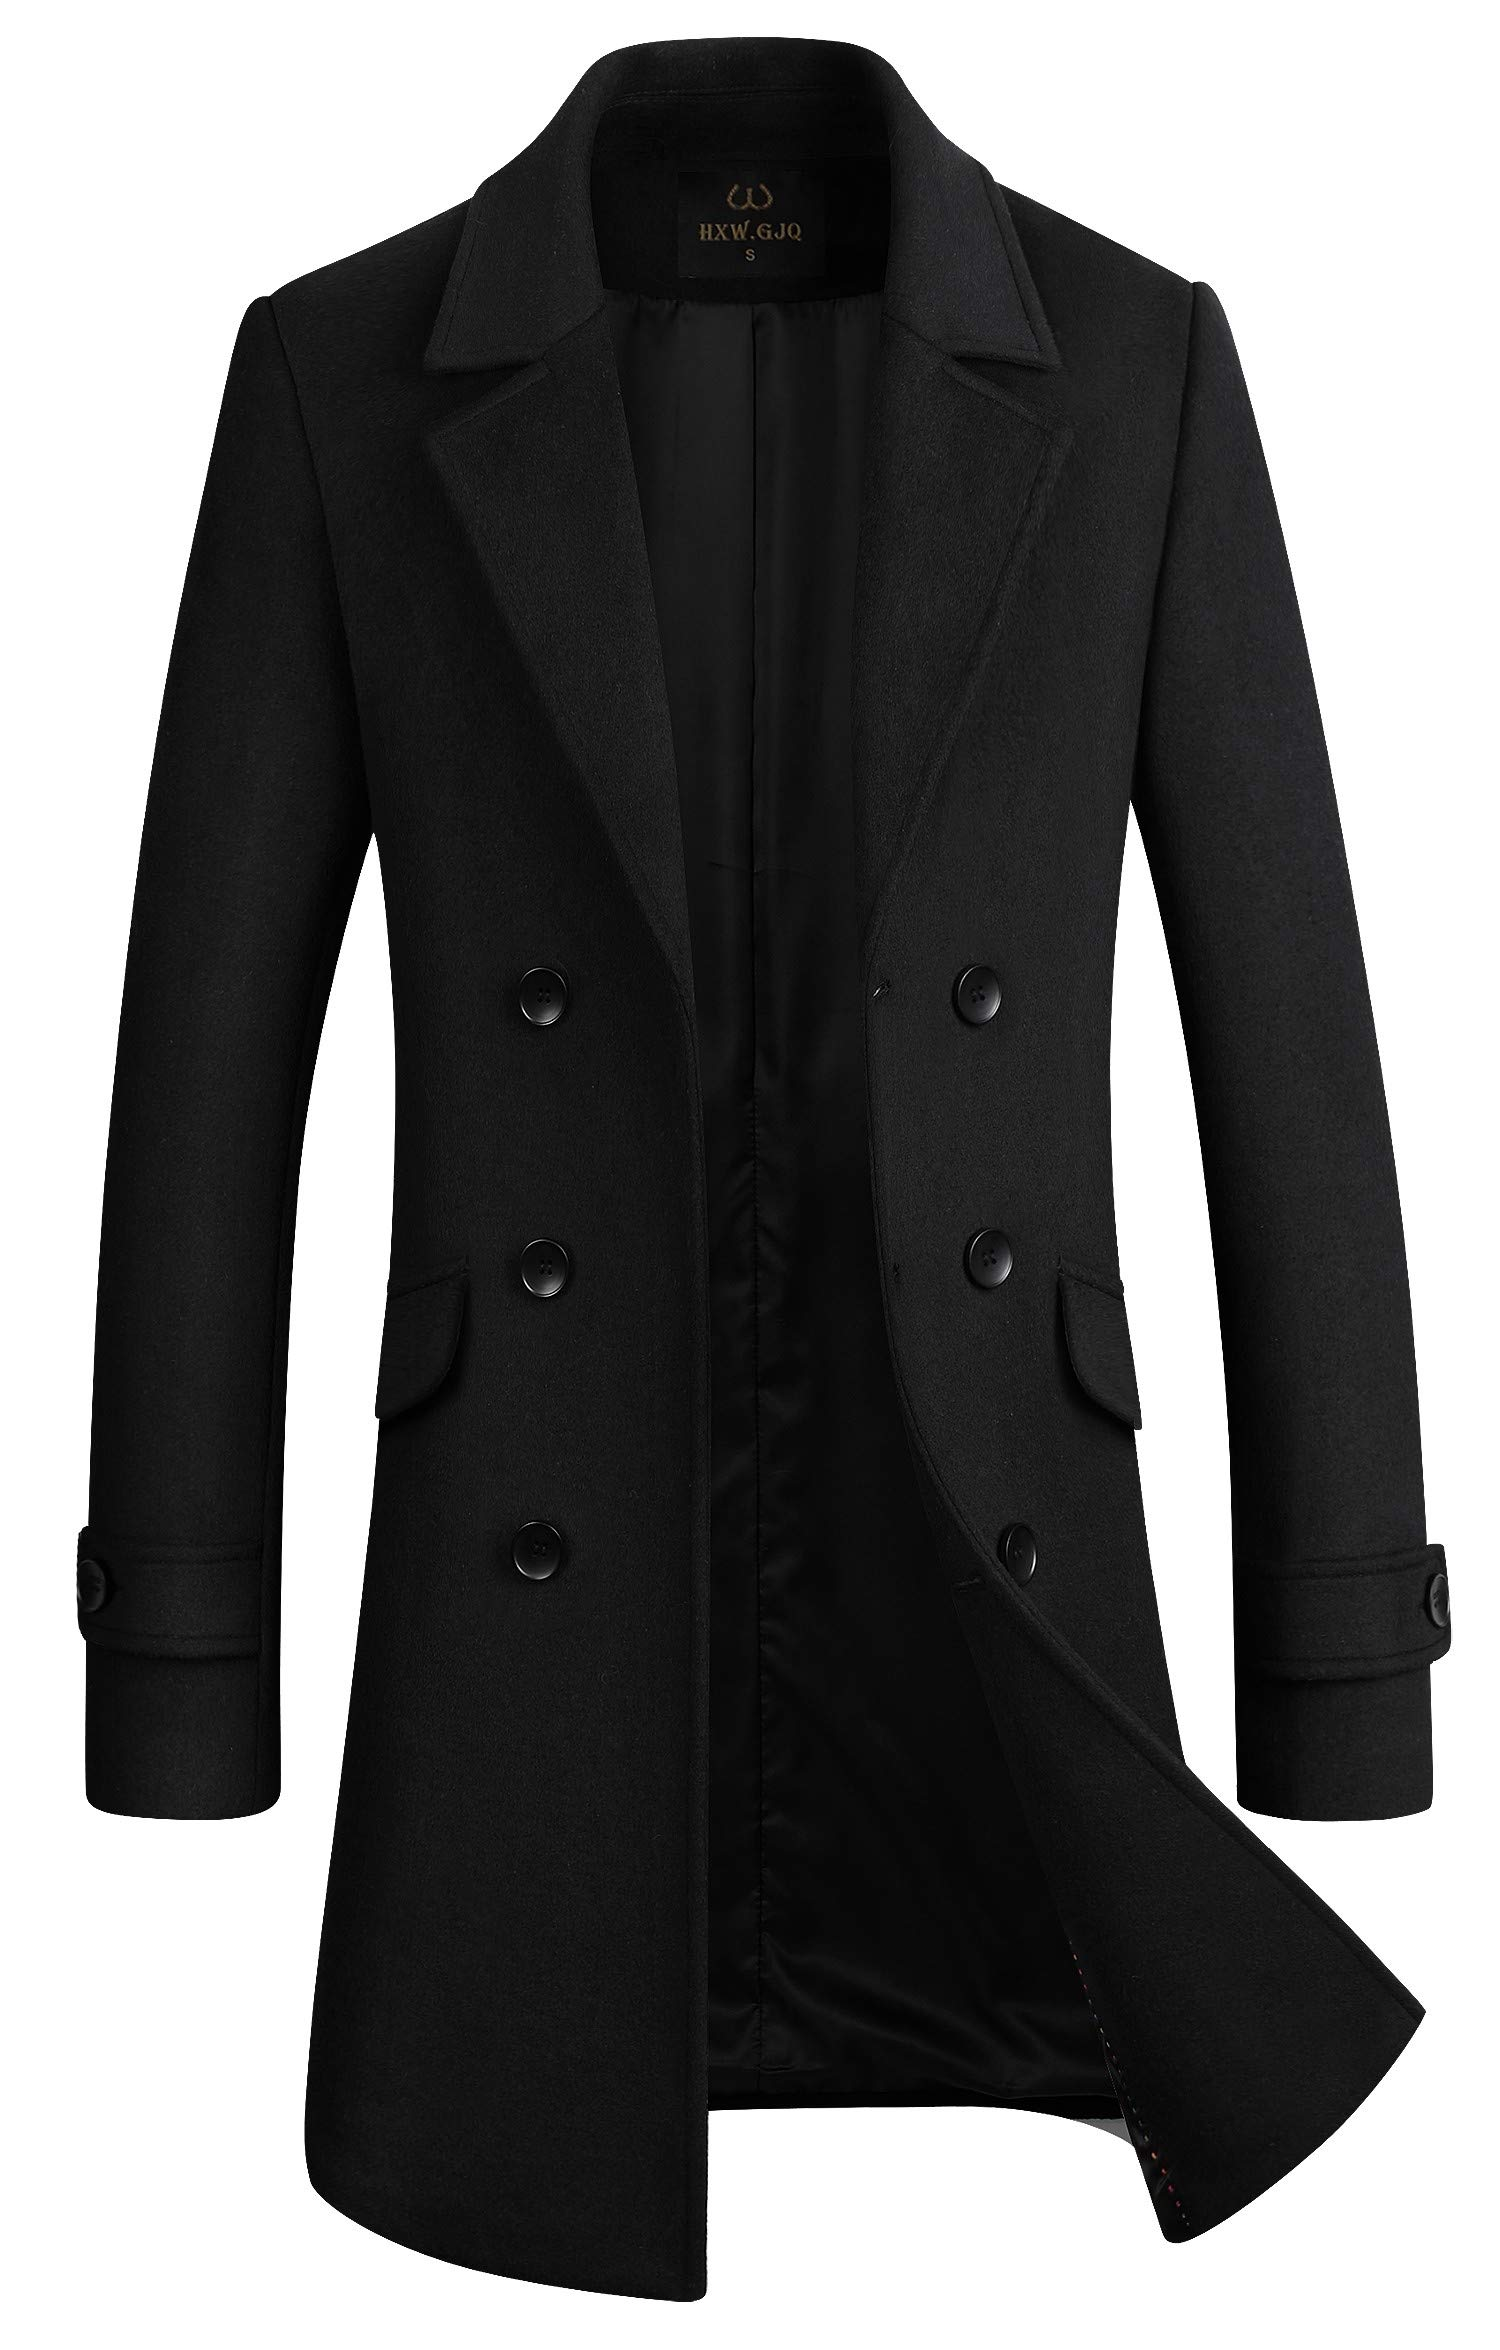 HXW.GJQ Men's Stylish Wool Blend Double Breasted Long Pea Coat (Black, Large) by HXW.GJQ